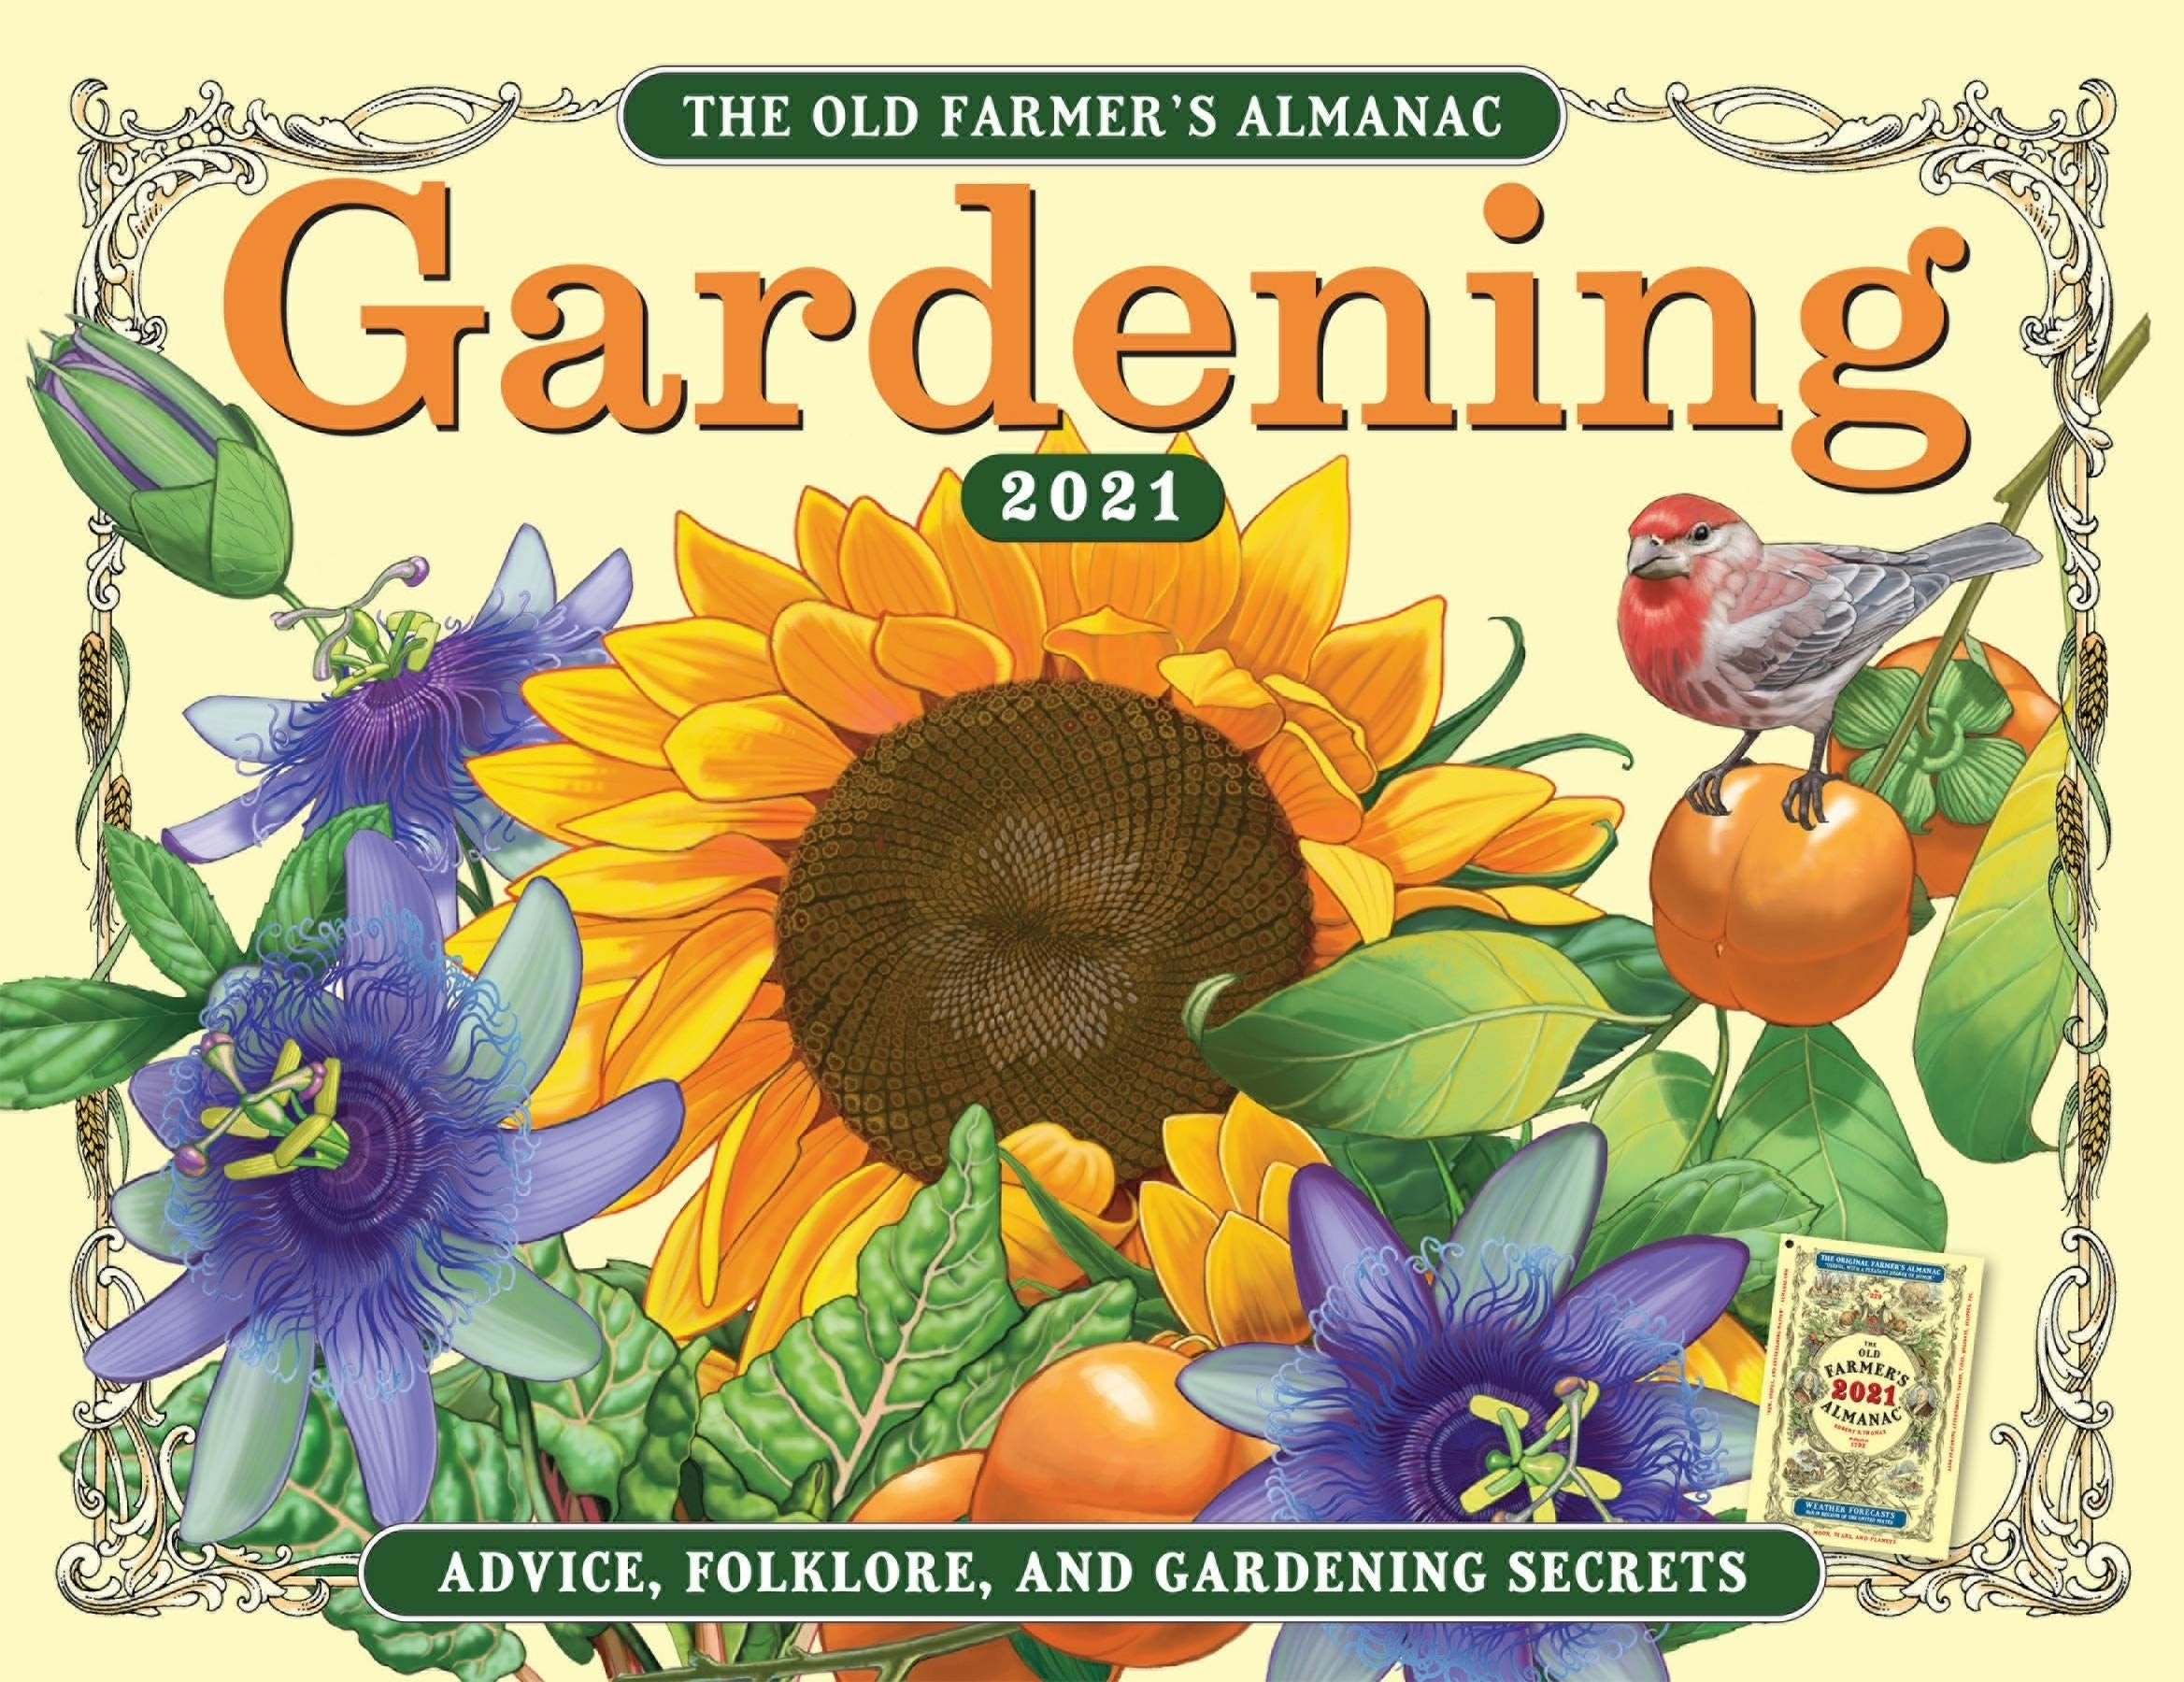 the calendar cover with a sunflower illustration